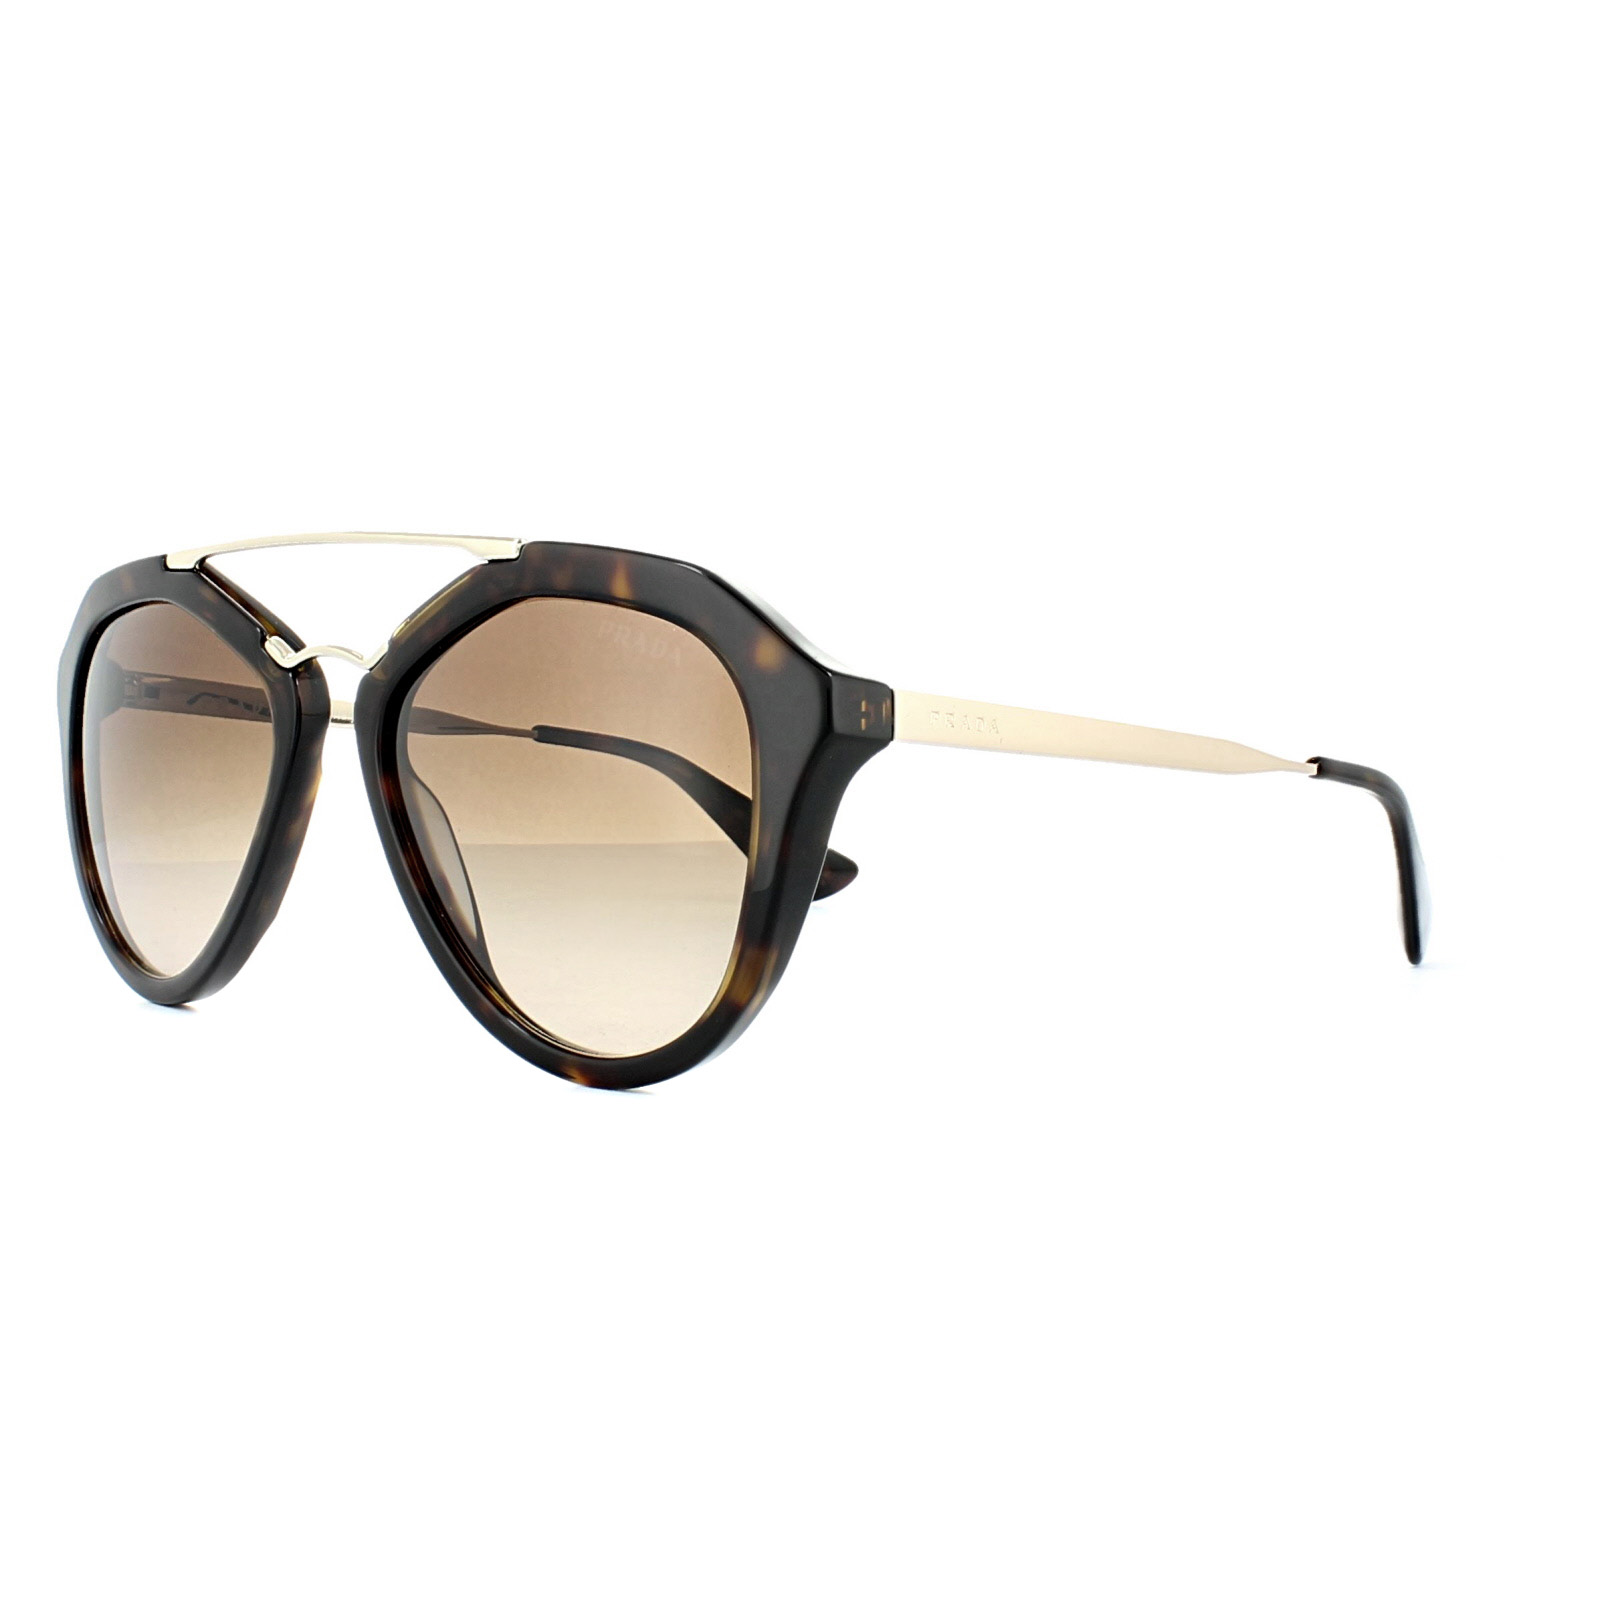 29f37aeaddd8 Sentinel Prada Sunglasses Cinema 12QS 2AU6S1 Havana Brown Gradient